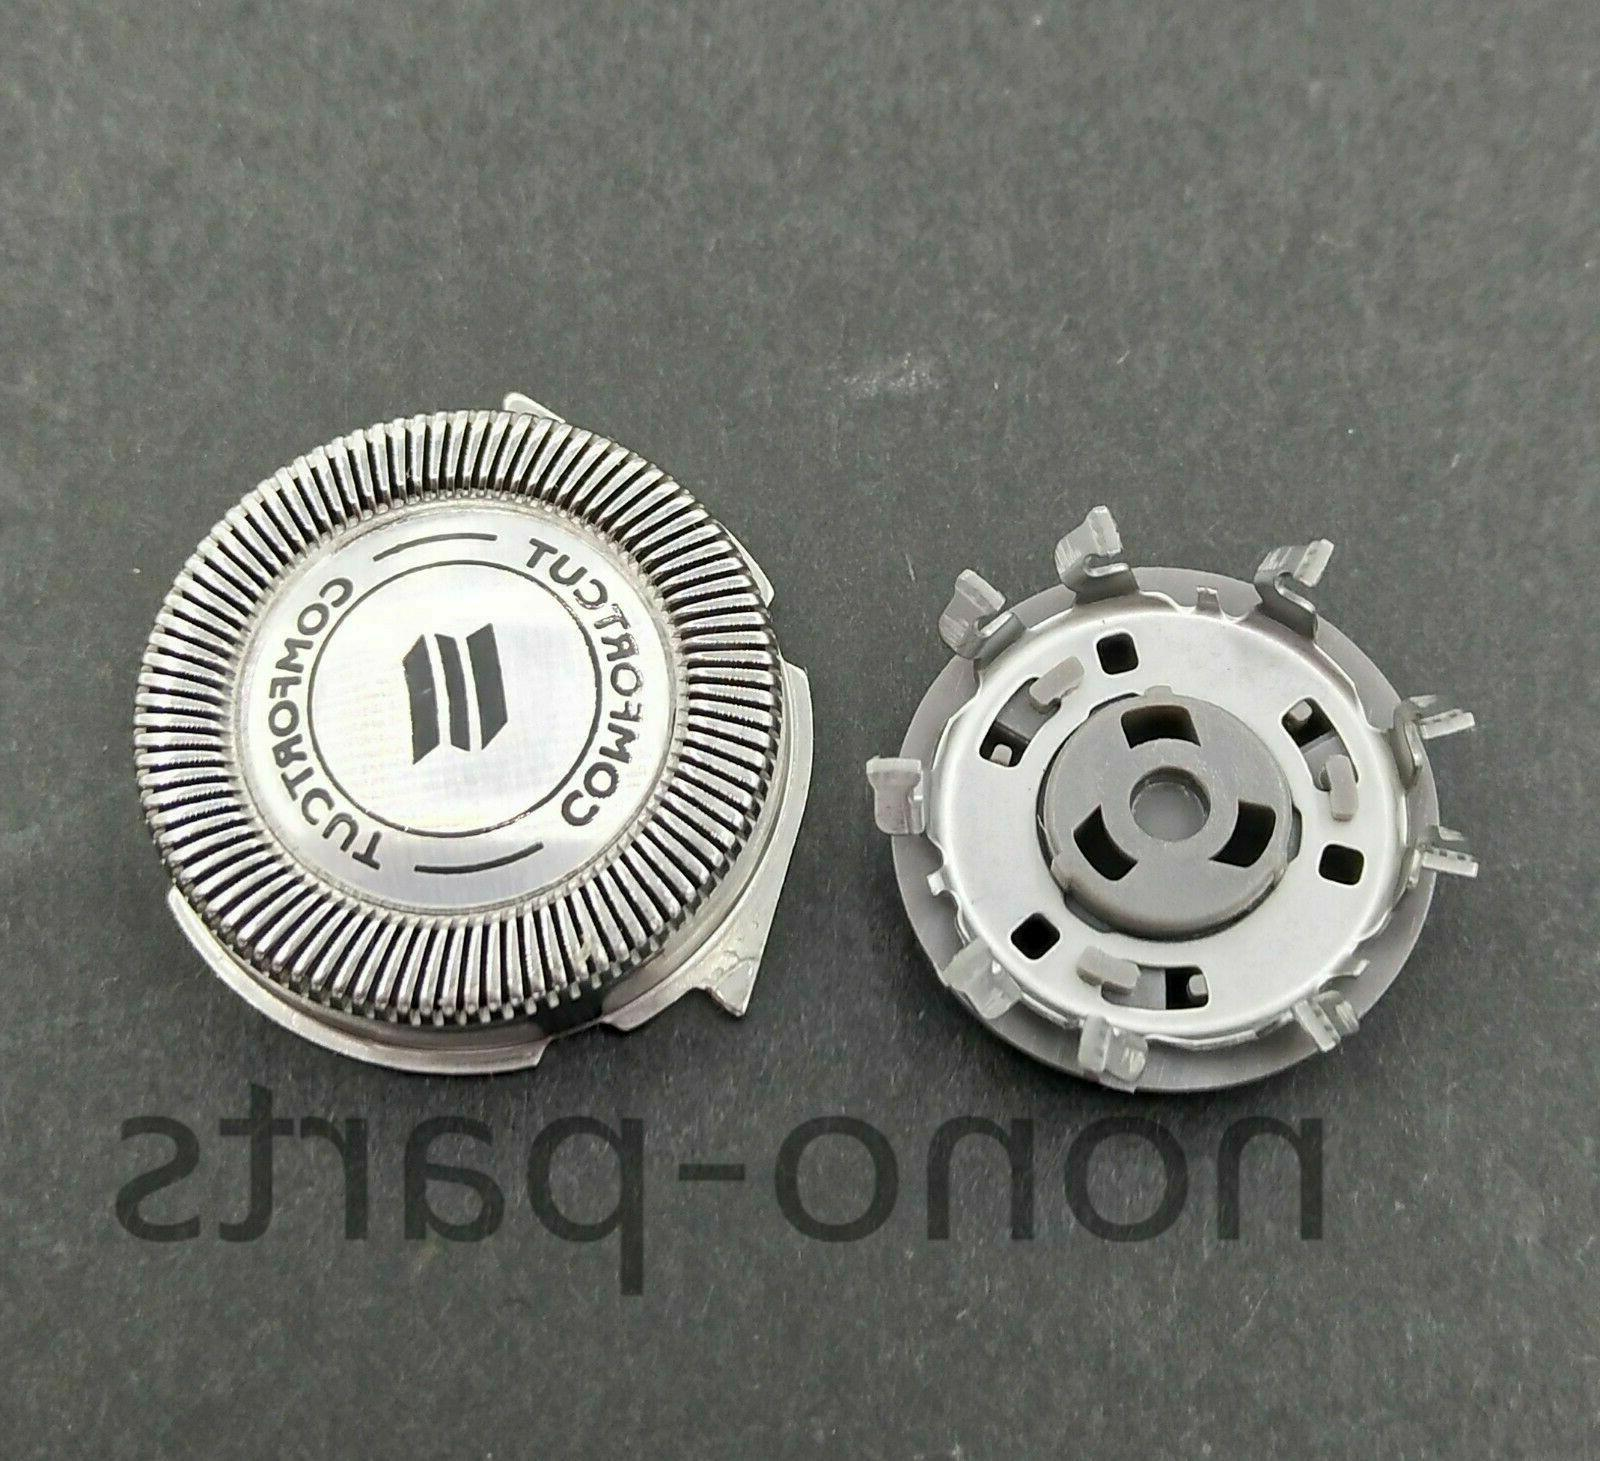 SH30 S3000 S1000 shaver Heads